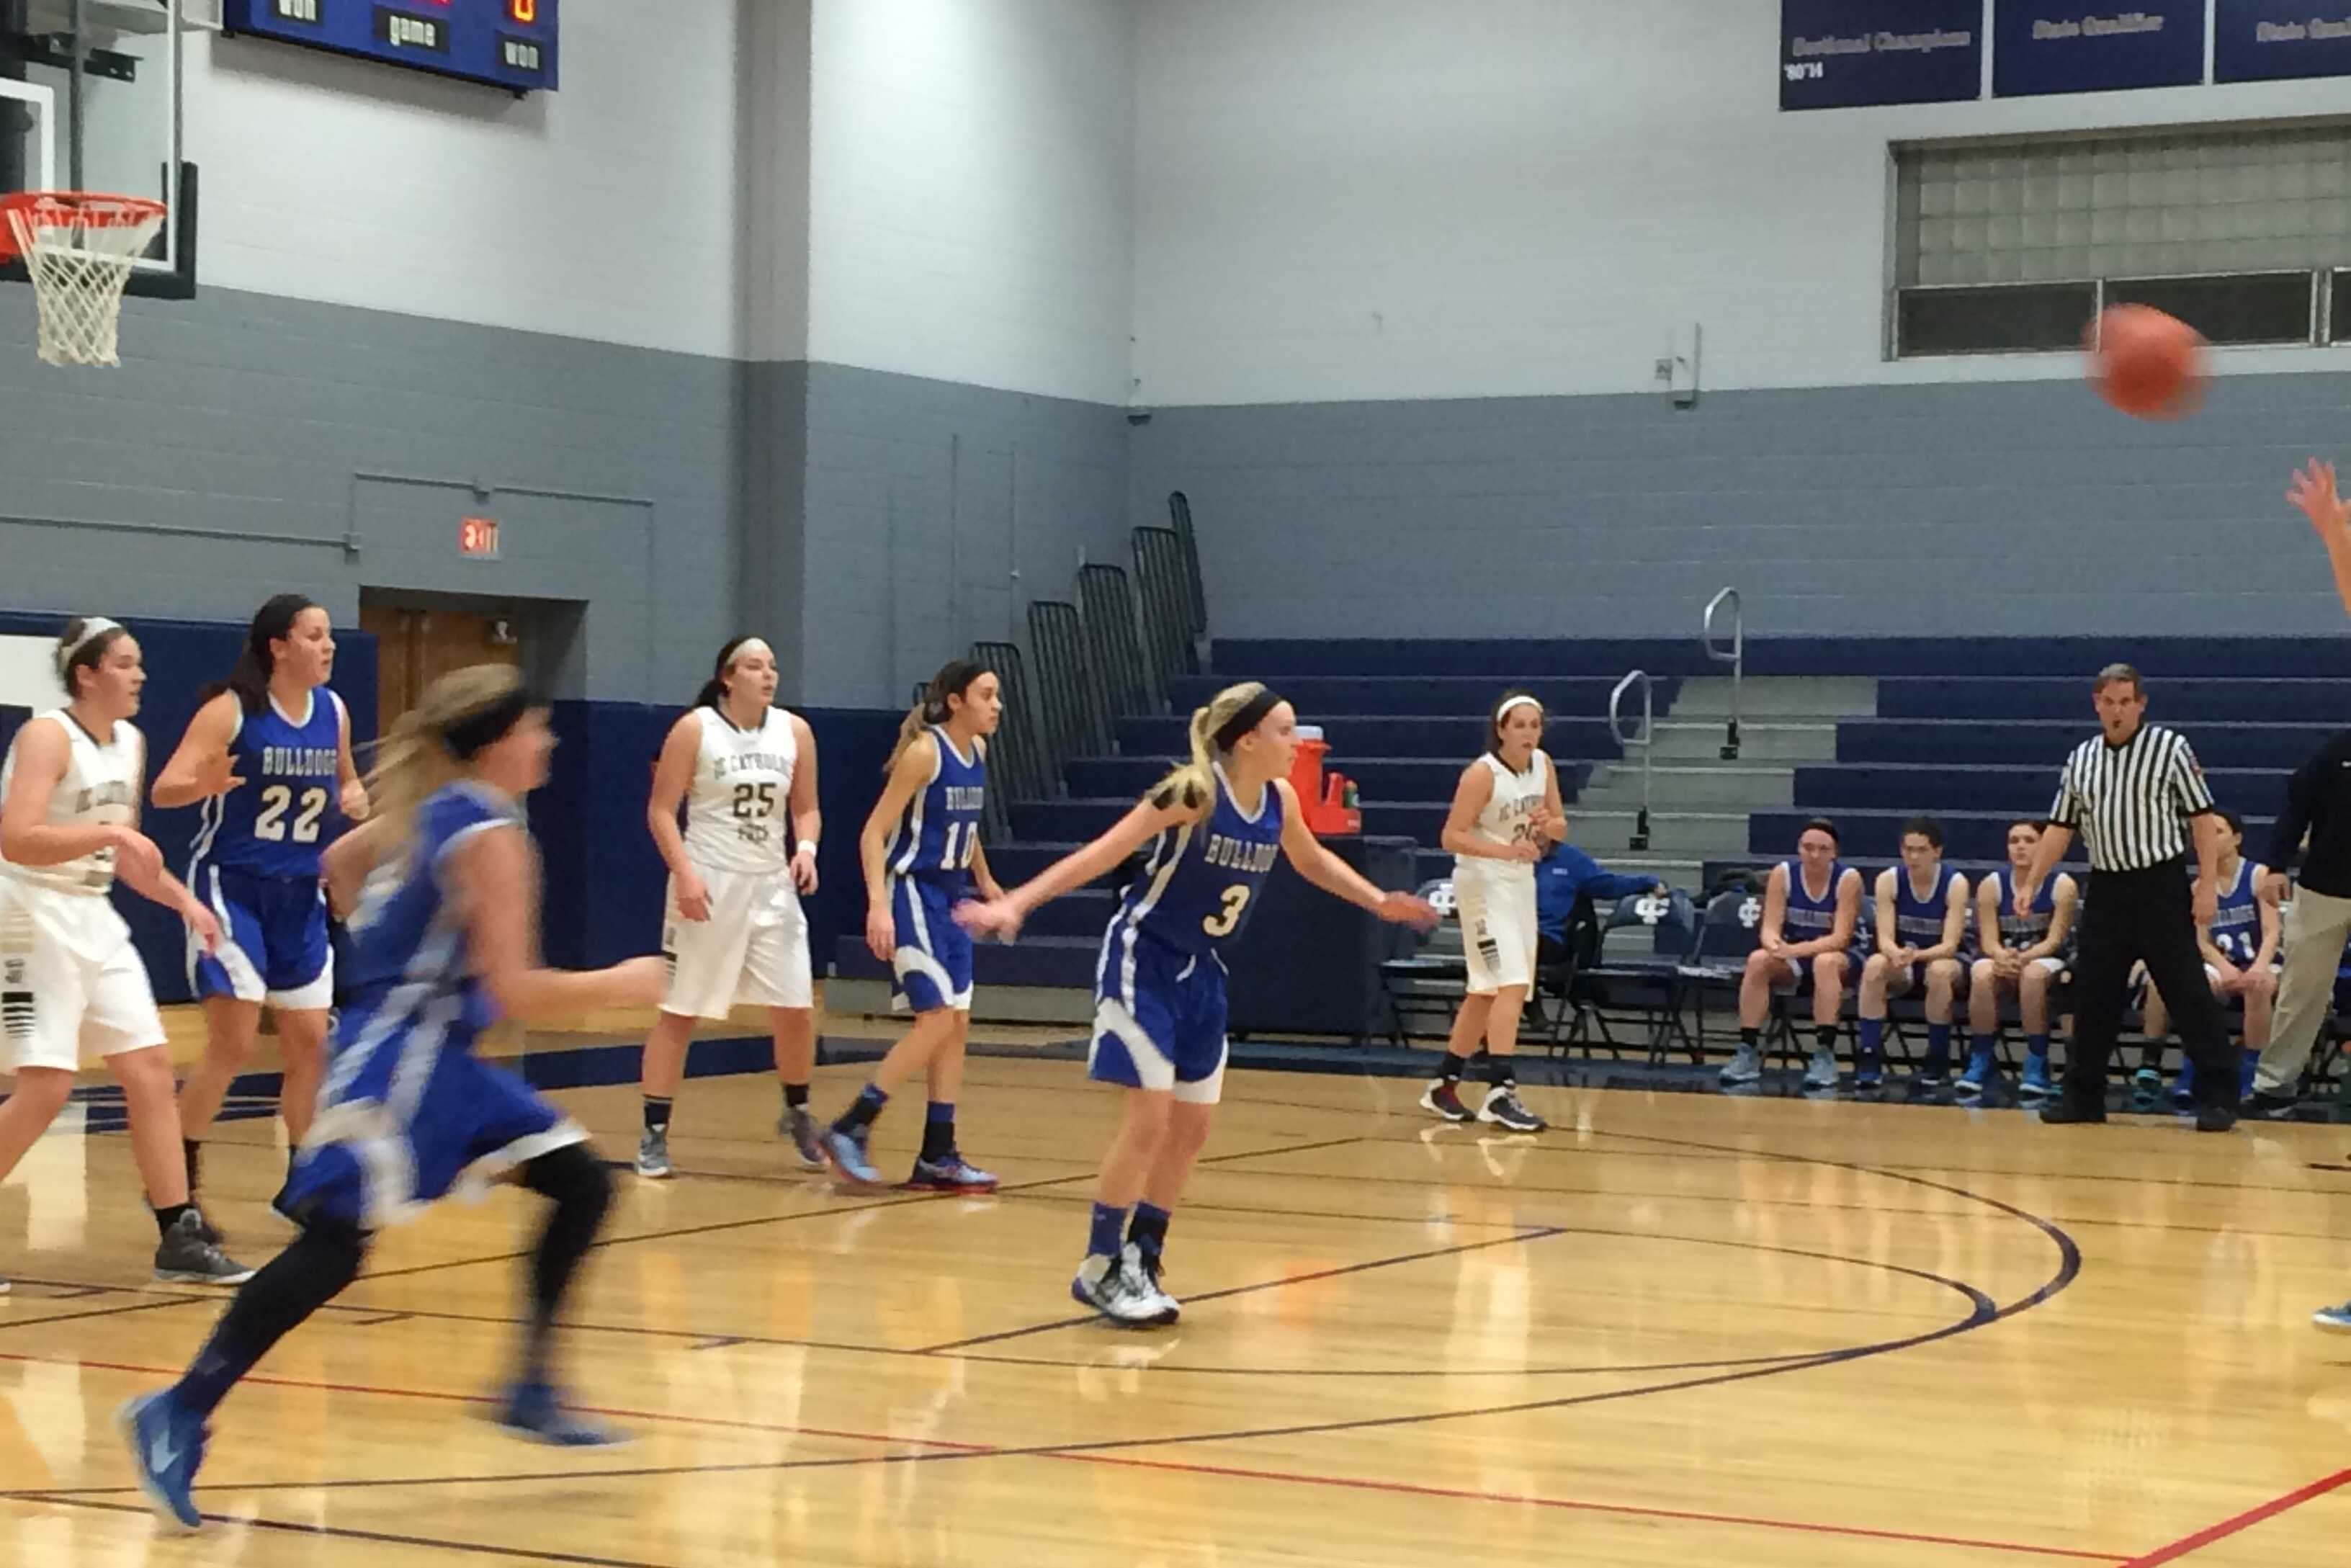 RB girls basketball plays at ICCP.